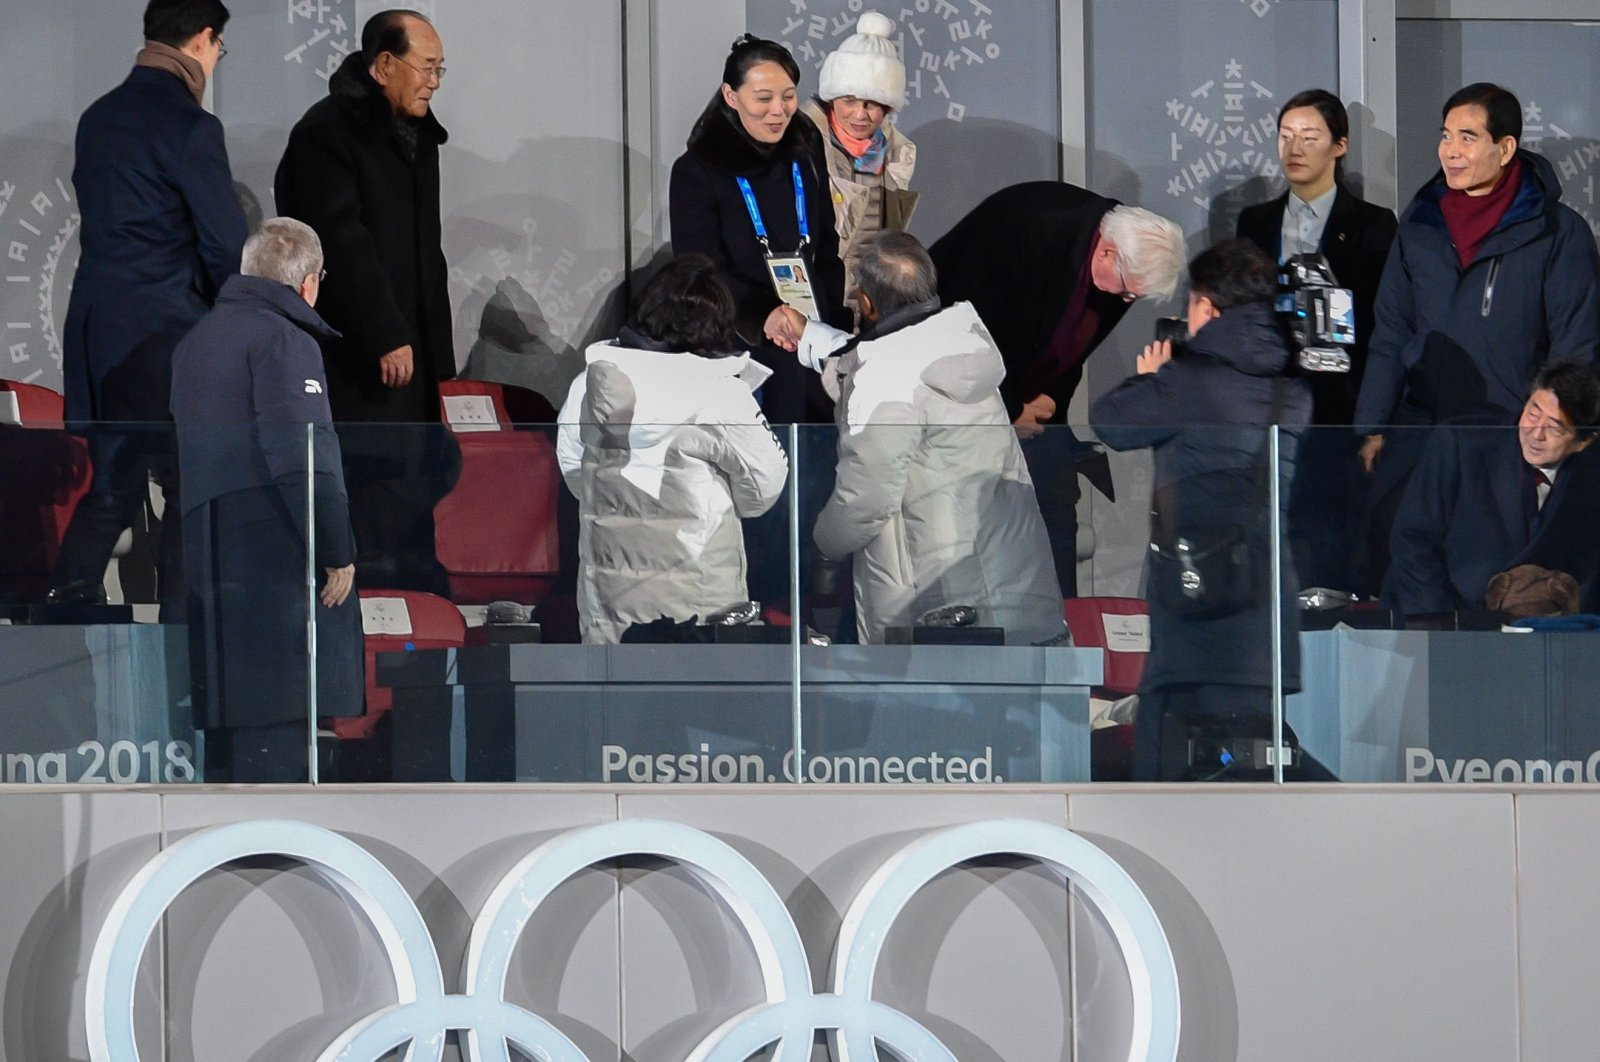 North Korea's Kim Jong Un's sister Kim Yo Jong shakes hand with South Korea's president Moon Jae-In during the opening ceremony of the Pyeongchang 2018 Winter Olympic games at the Pyeongchang stadium on Feb. 9, 2018. (AFP Photo)